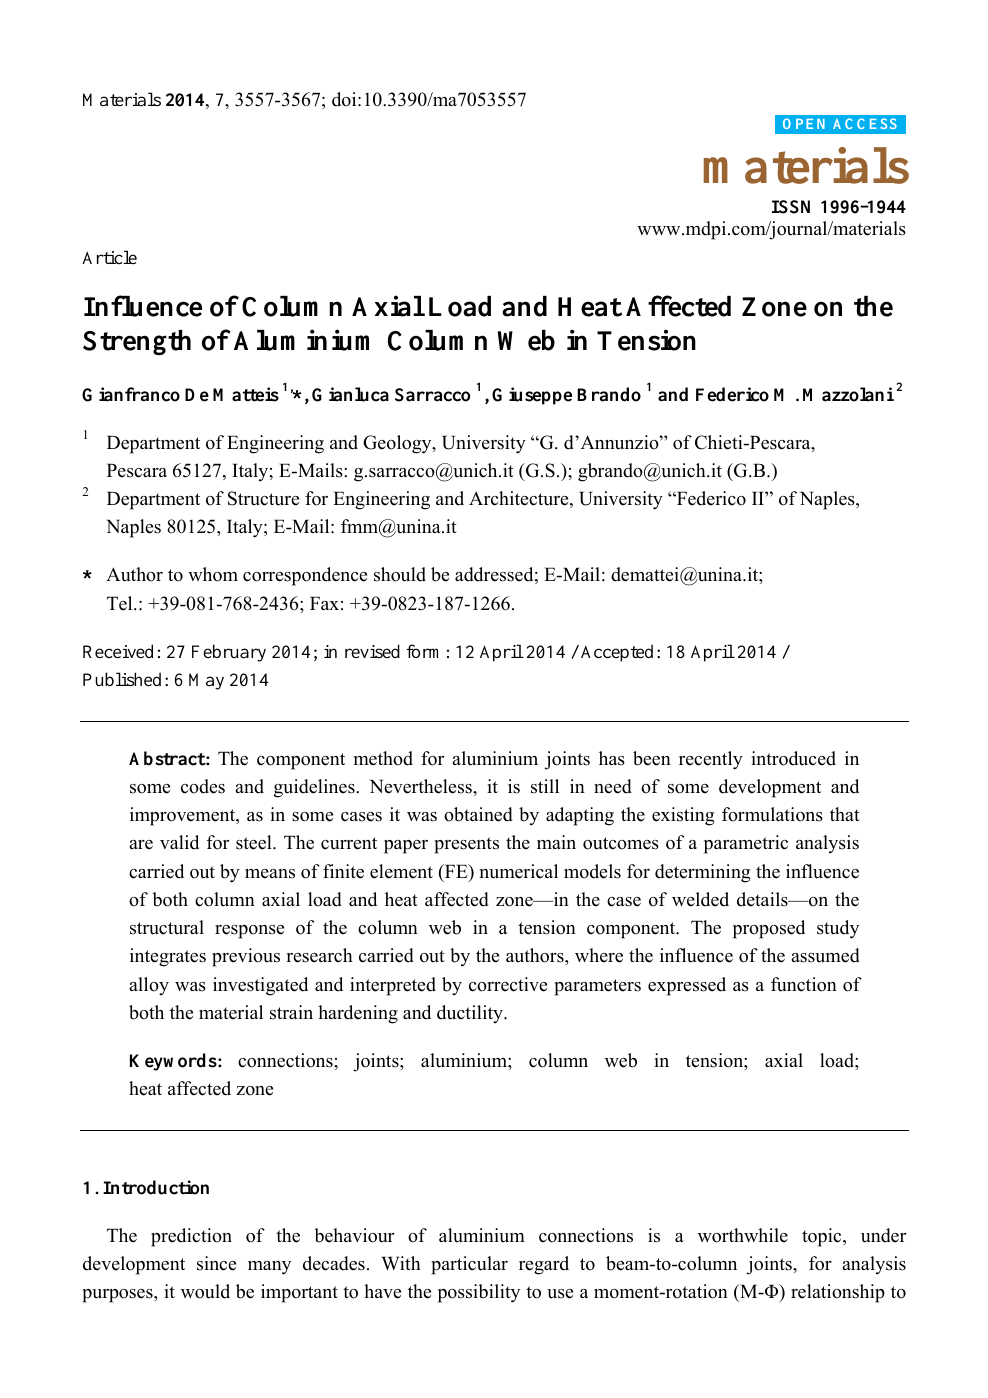 Influence of Column Axial Load and Heat Affected Zone on the